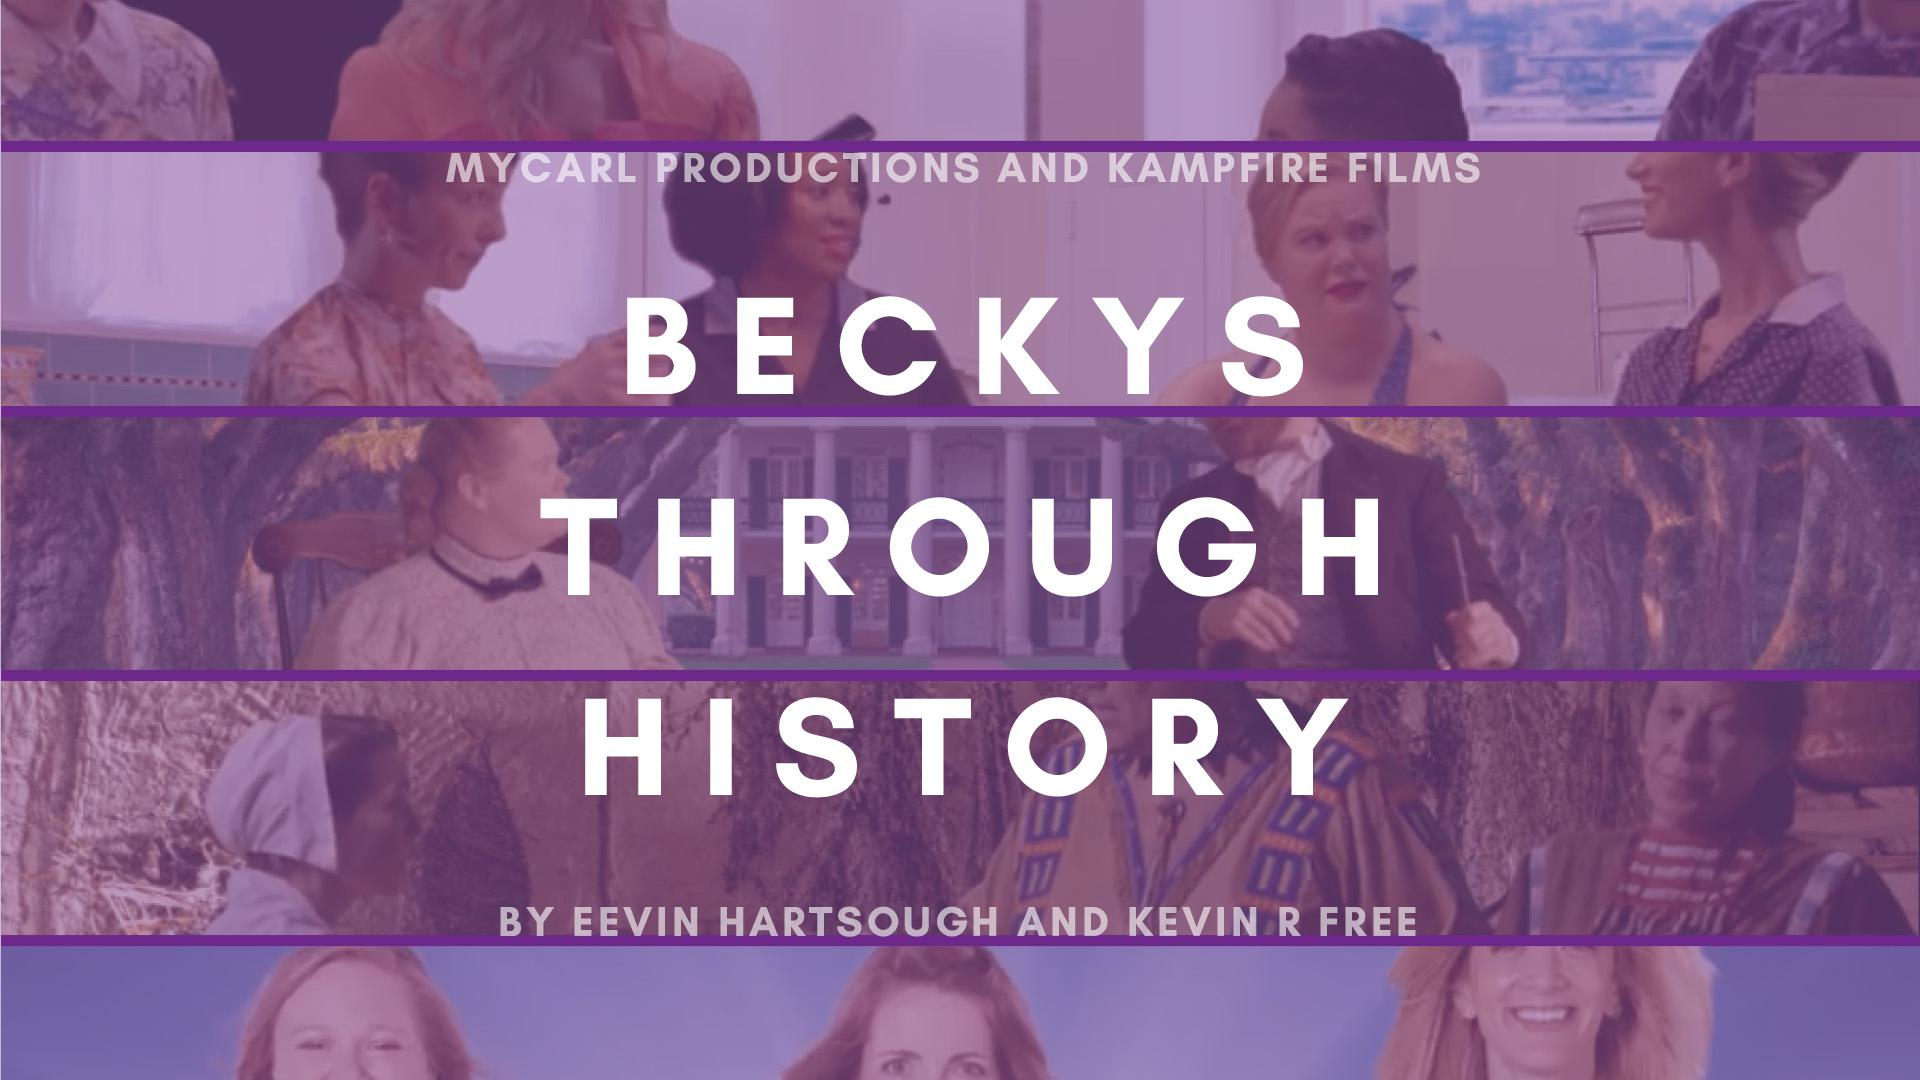 Beckys Through History